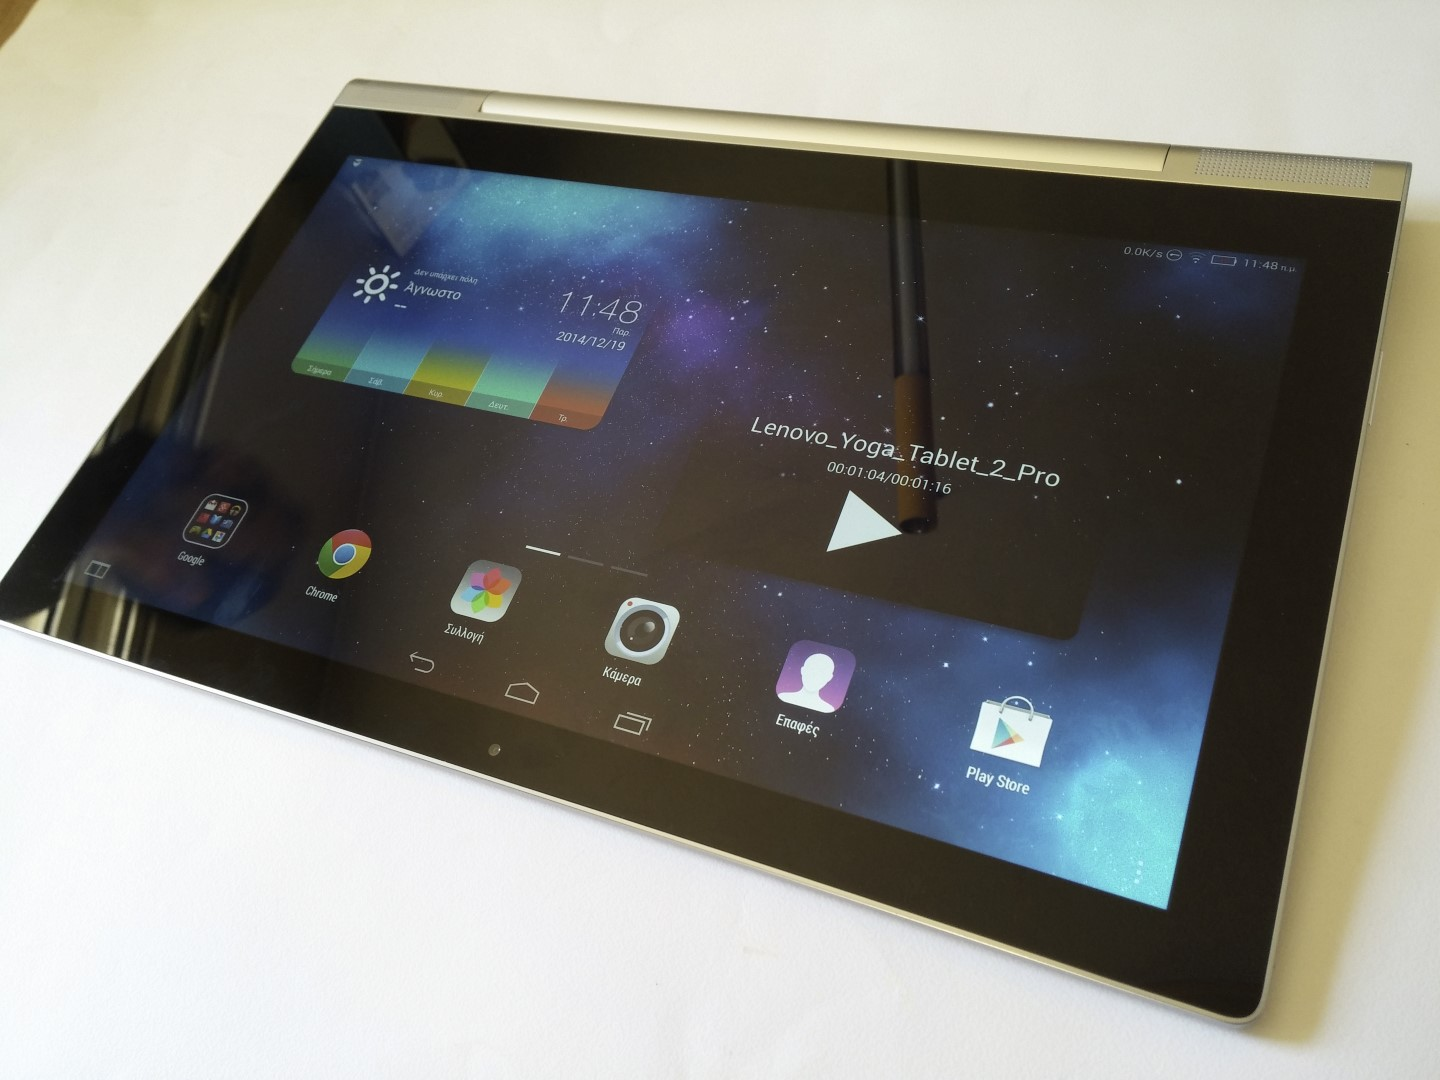 Lenovo Yoga Tablet 2 Pro hands-on review: Μια κατηγορία ...